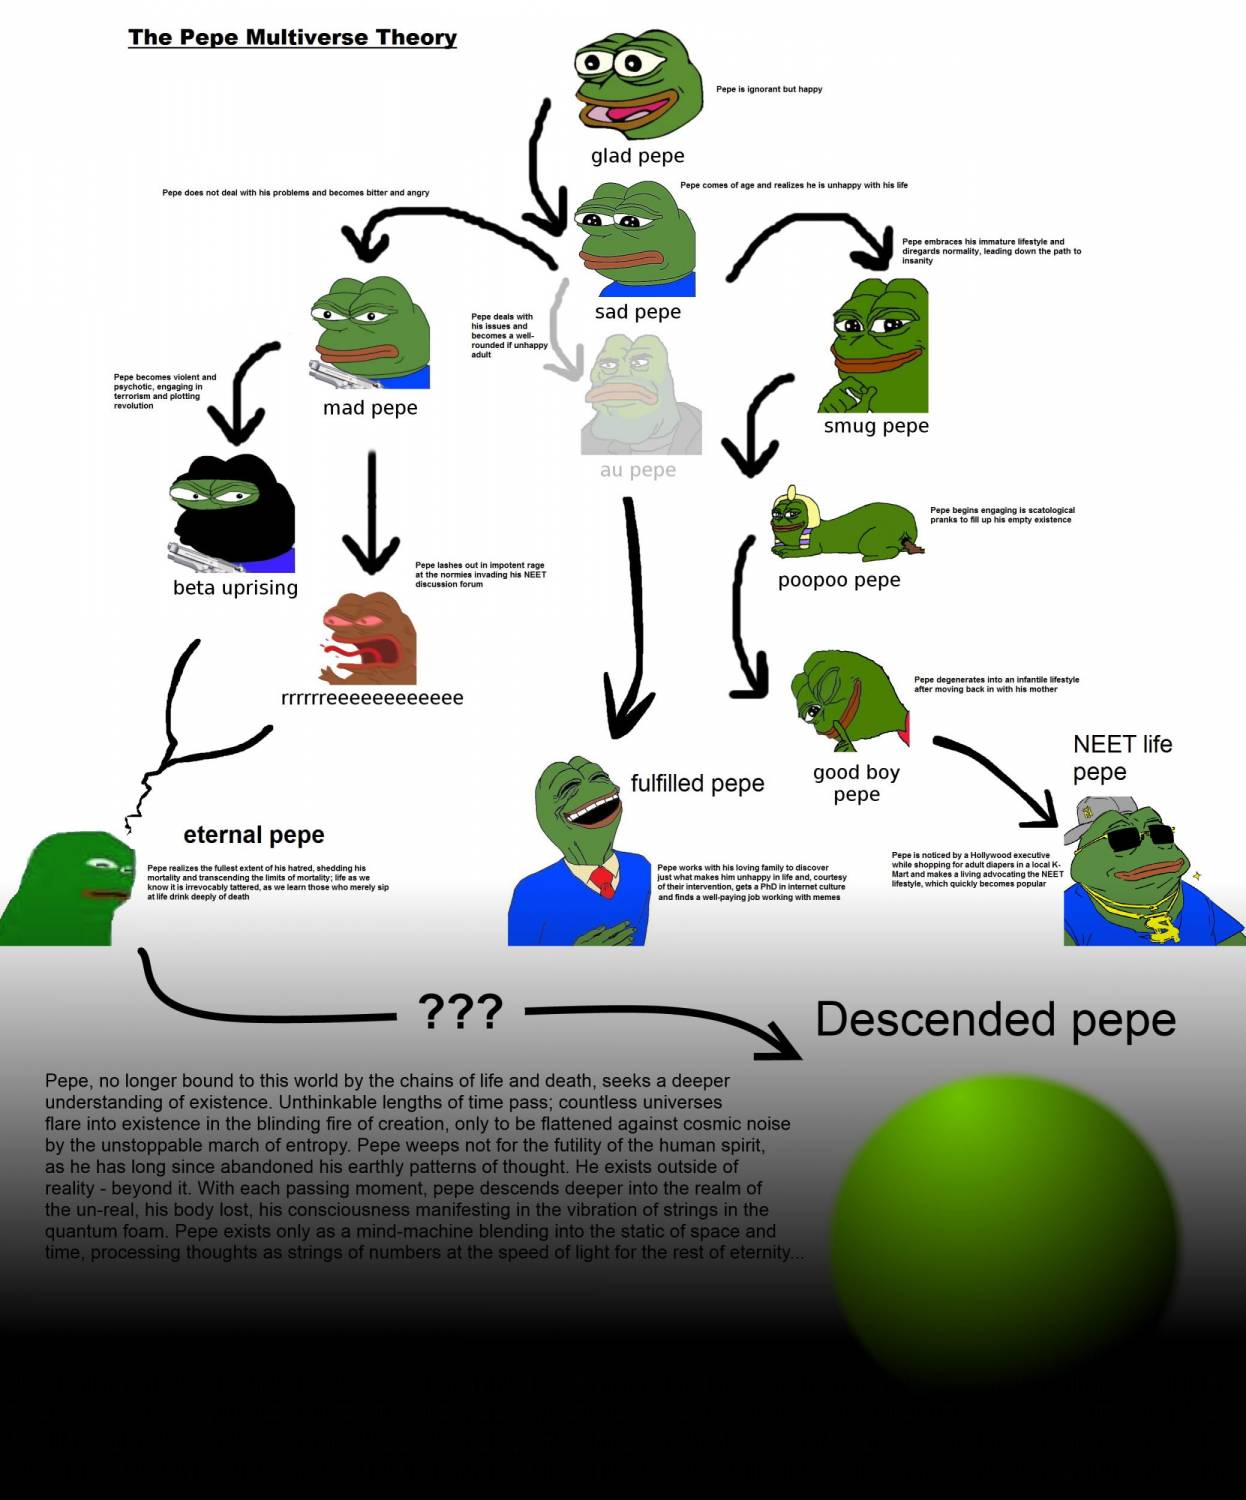 The Pepe Multiverse Theory